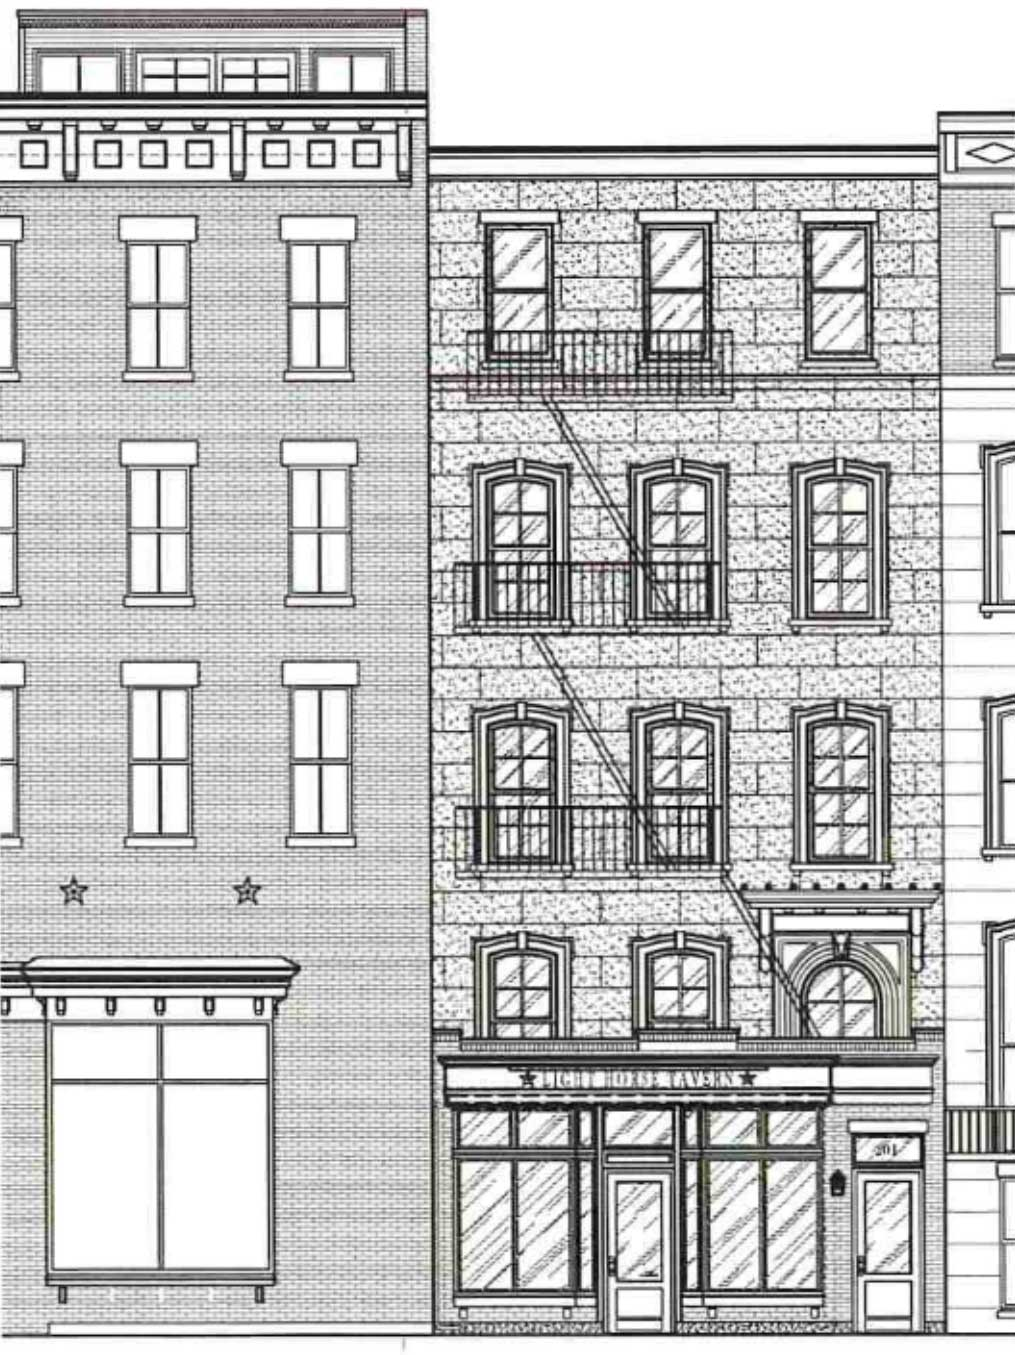 Light Horse Tavern Expansion Plans